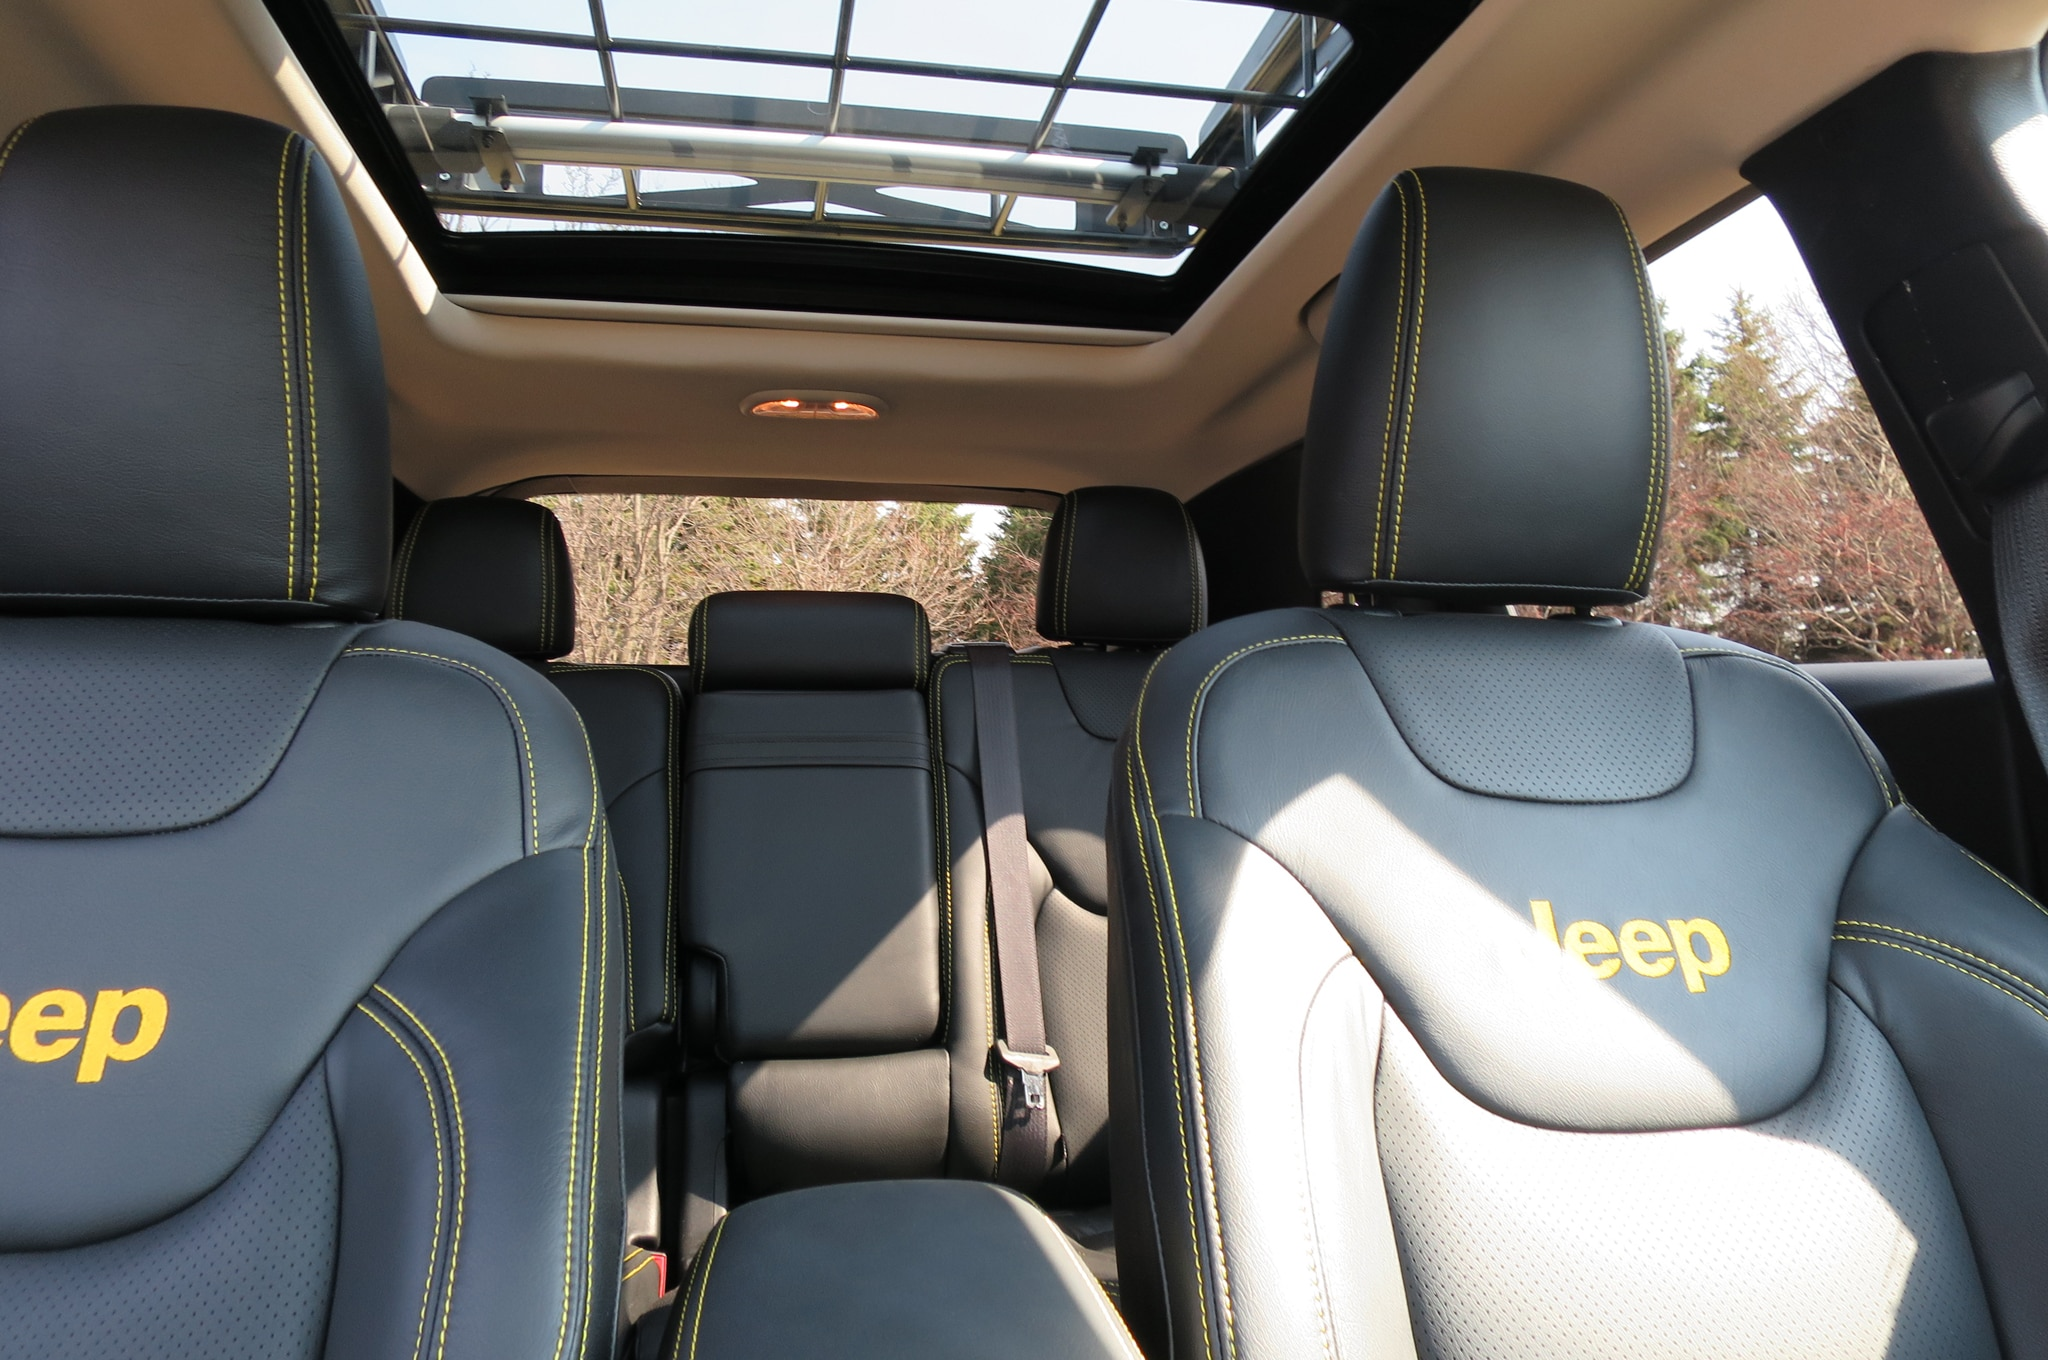 Jeep Cherokee Adventurer Concept interior moonroof